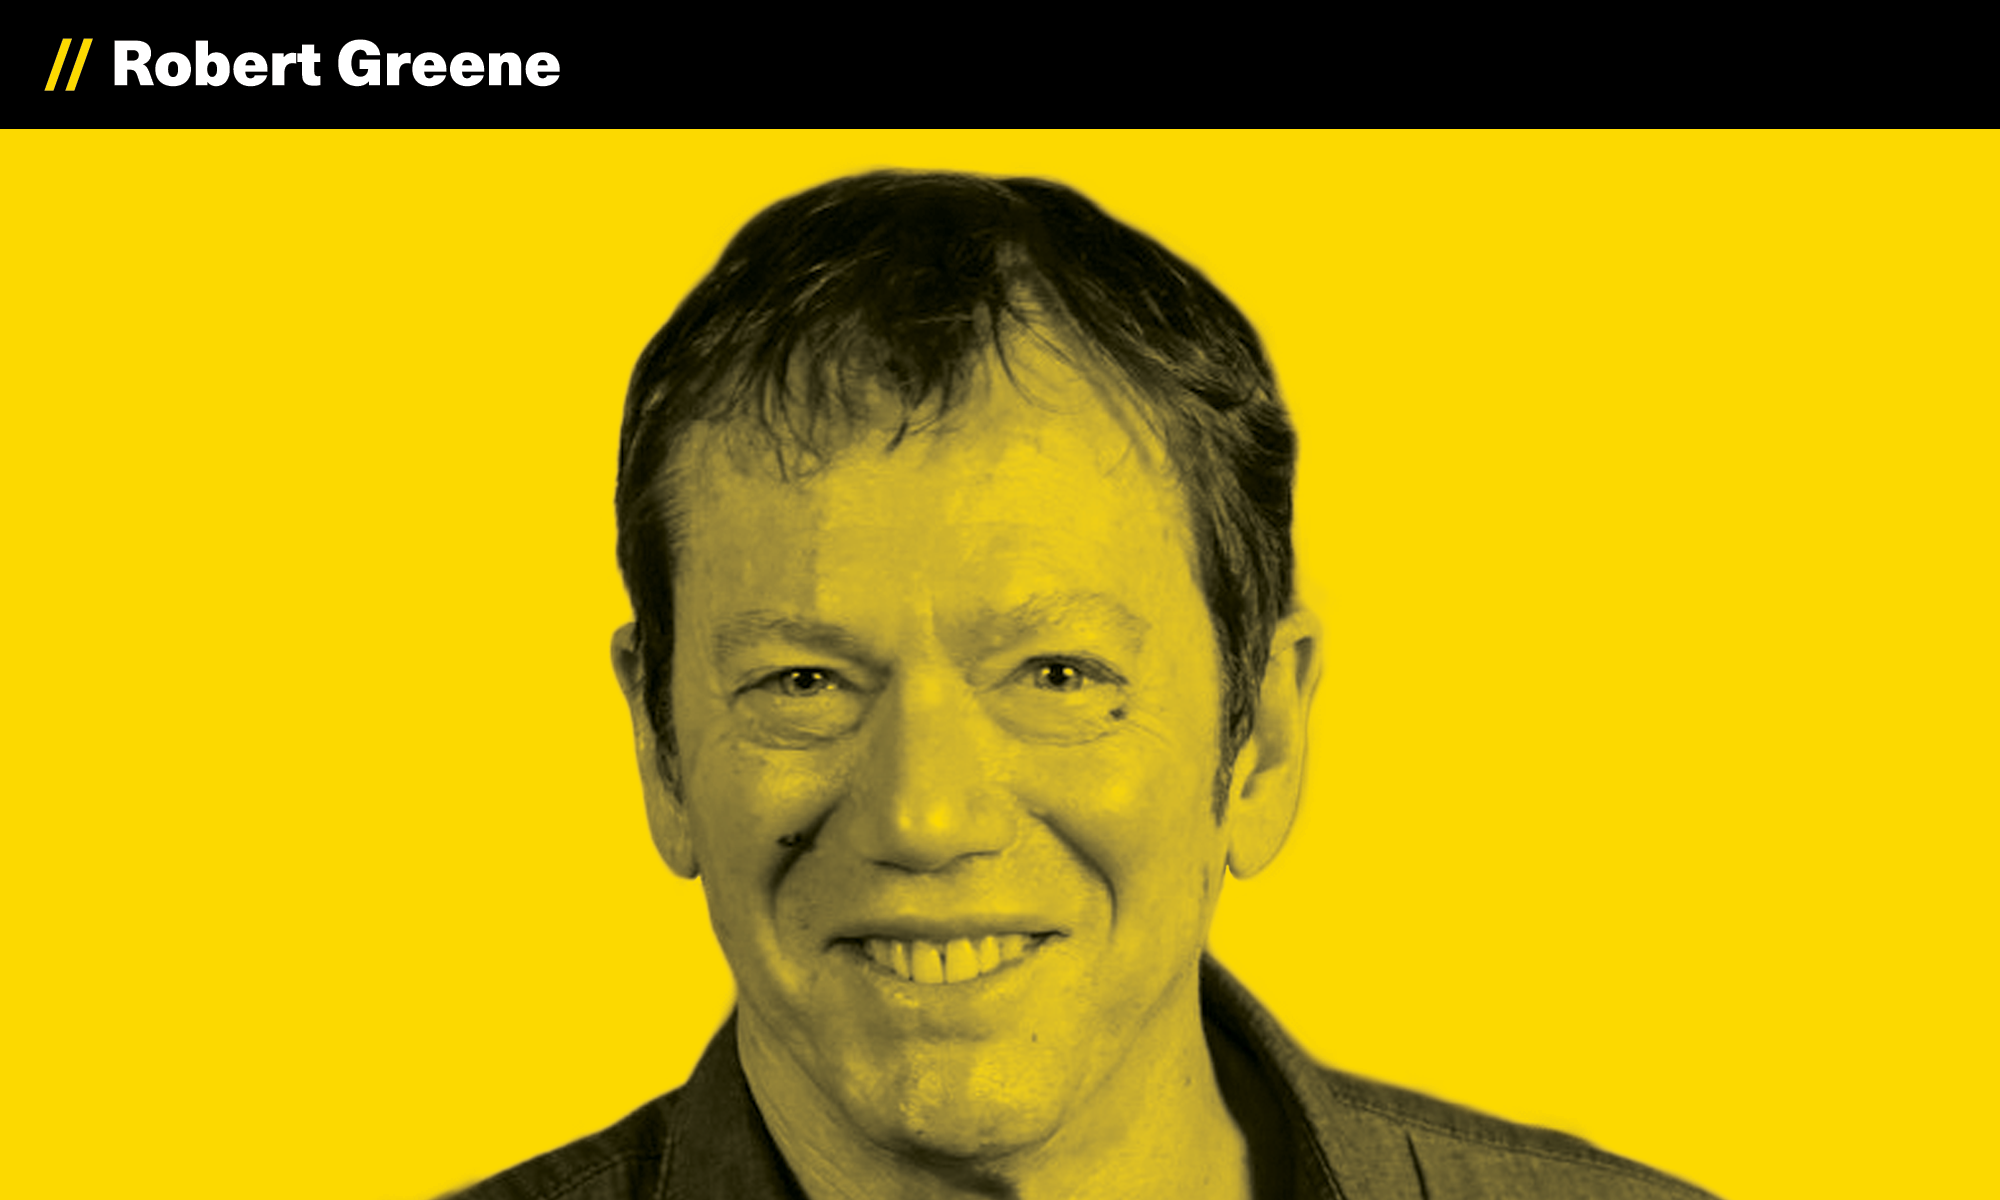 Robert Greene, The 48 Laws of Power, Author, The Founder Hour, Podcast